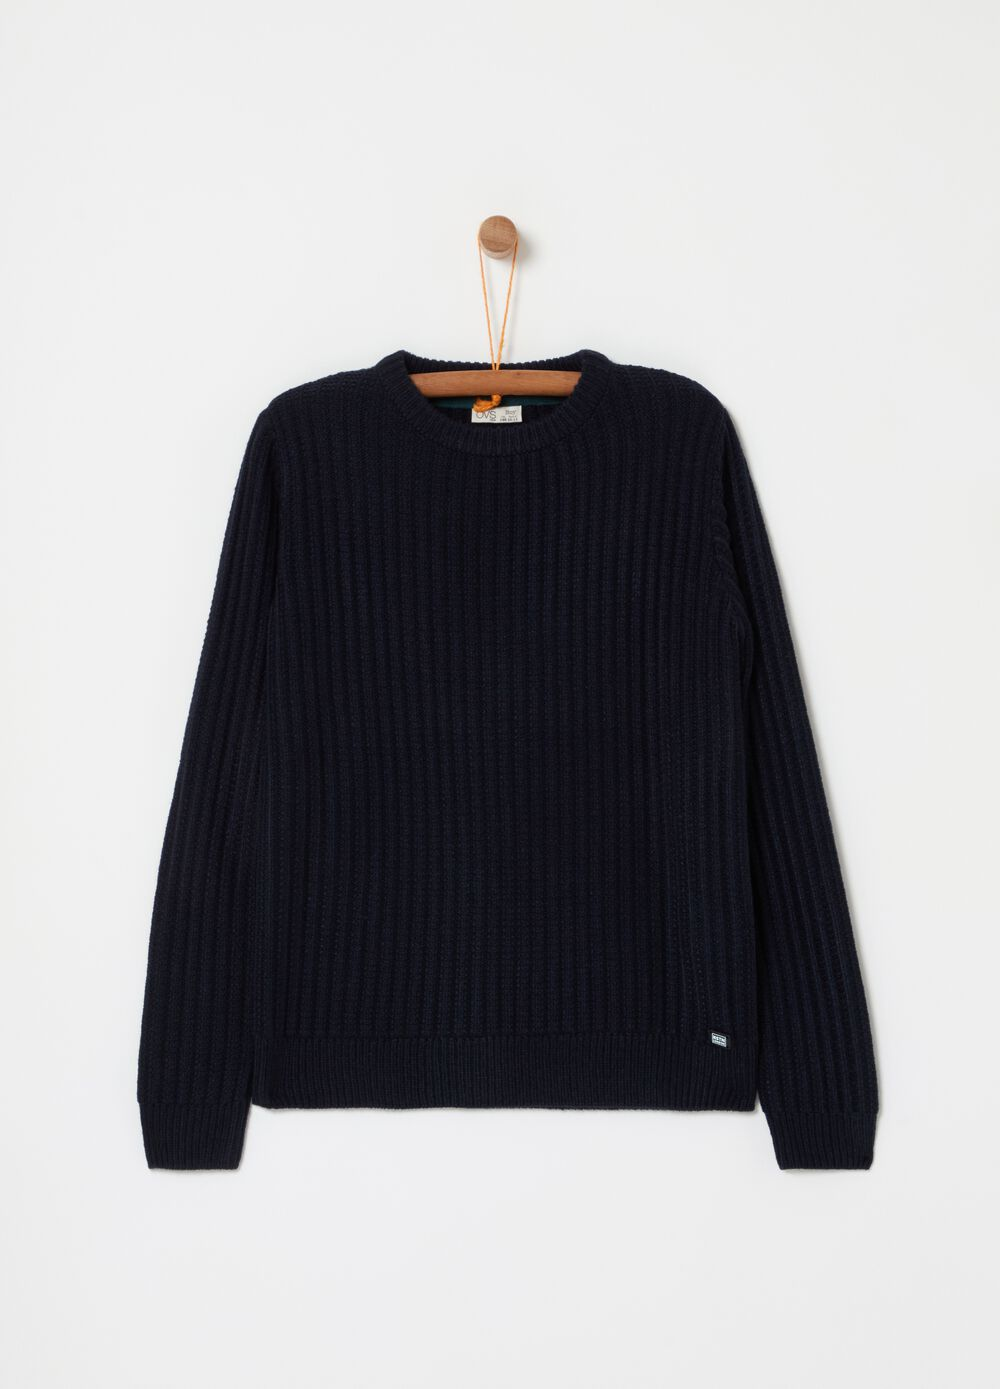 Solid colour knitted pullover with round neckline